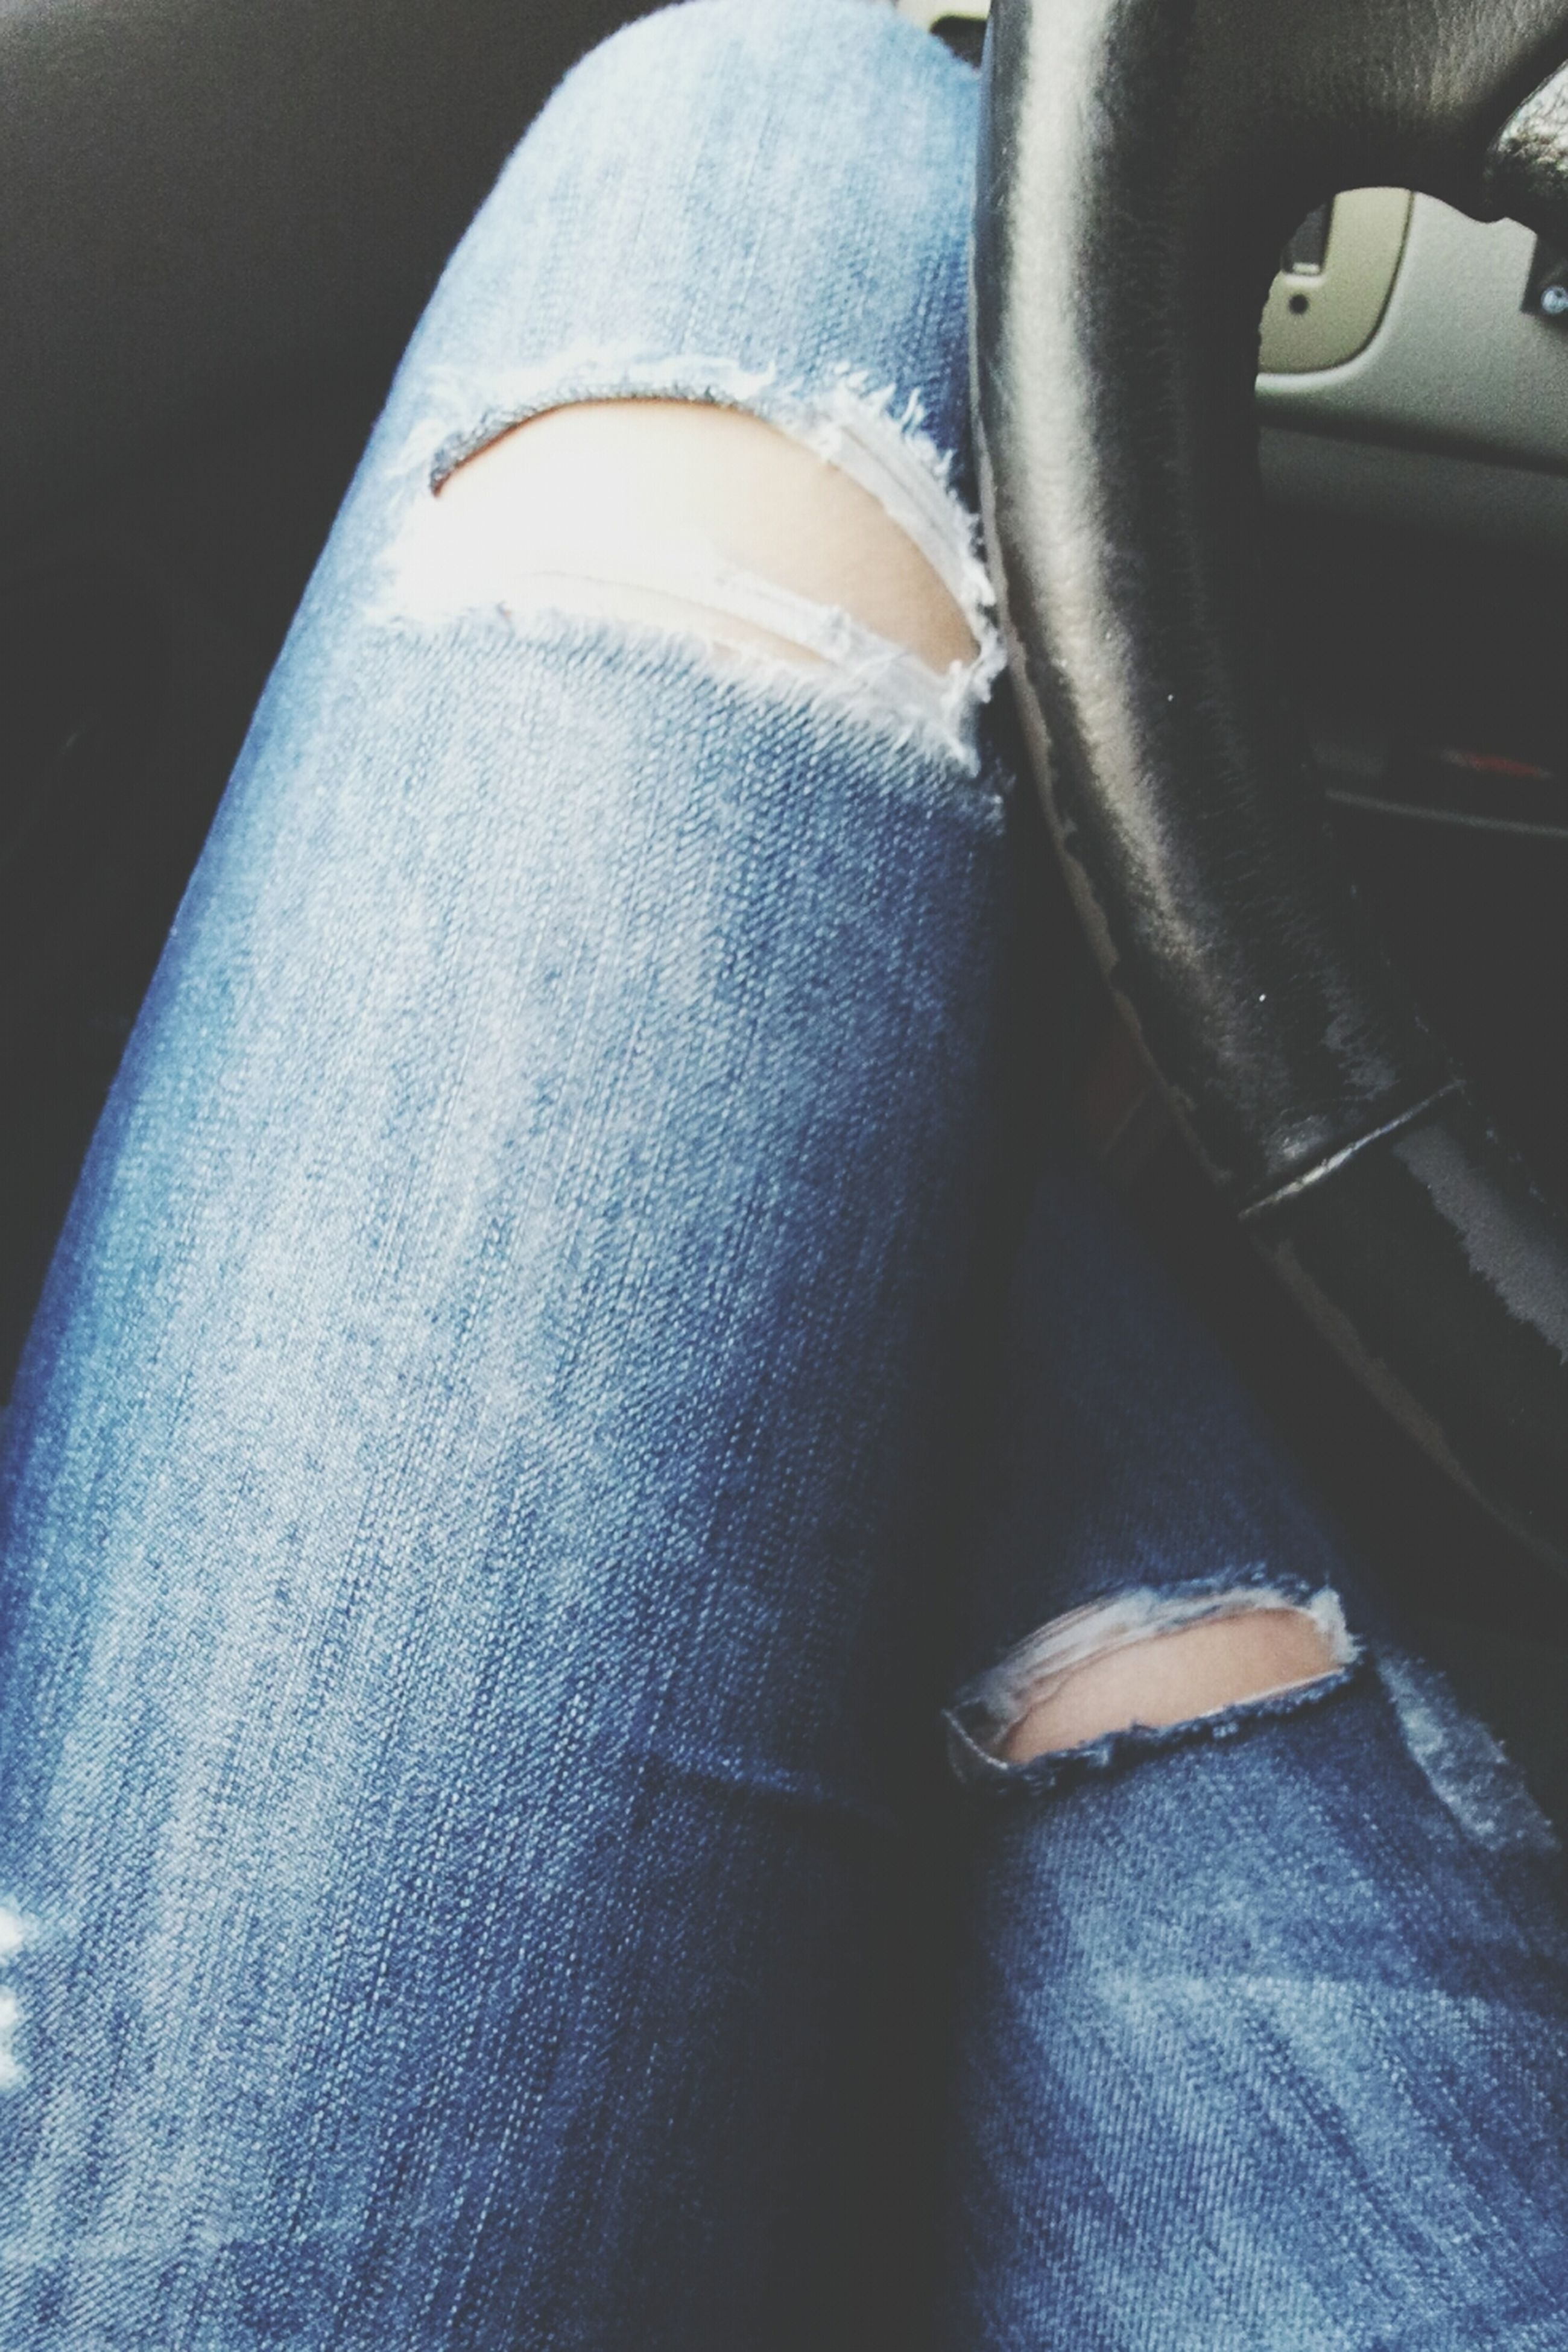 indoors, jeans, person, low section, close-up, shoe, transportation, mode of transport, land vehicle, footwear, high angle view, car, relaxation, part of, men, vehicle interior, sitting